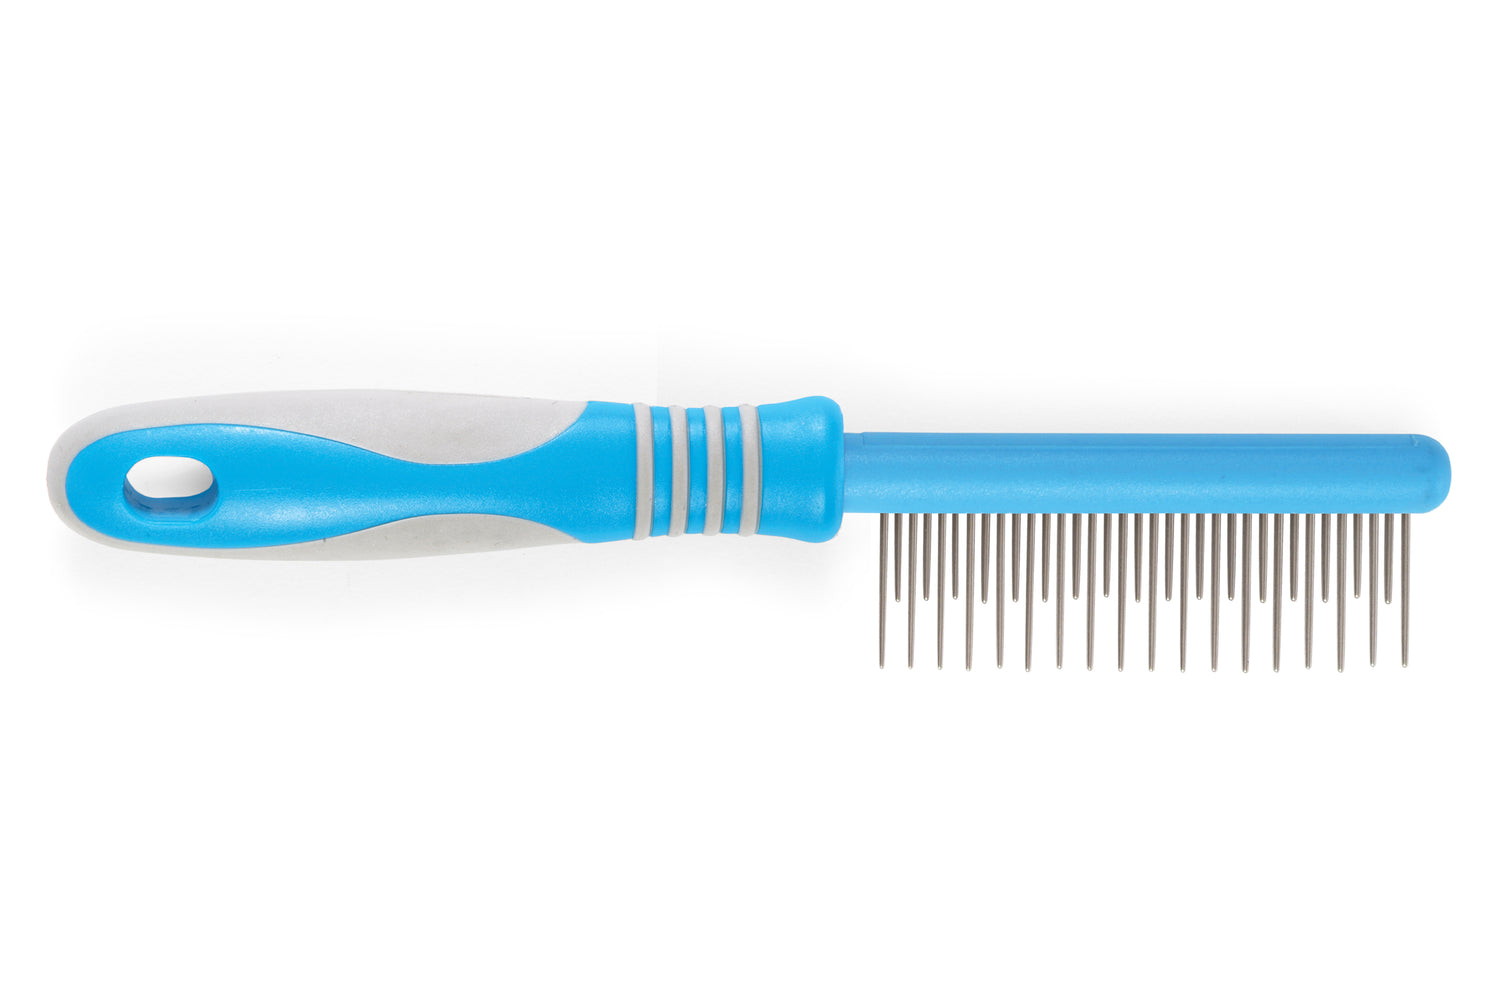 Ergo Moulting Comb